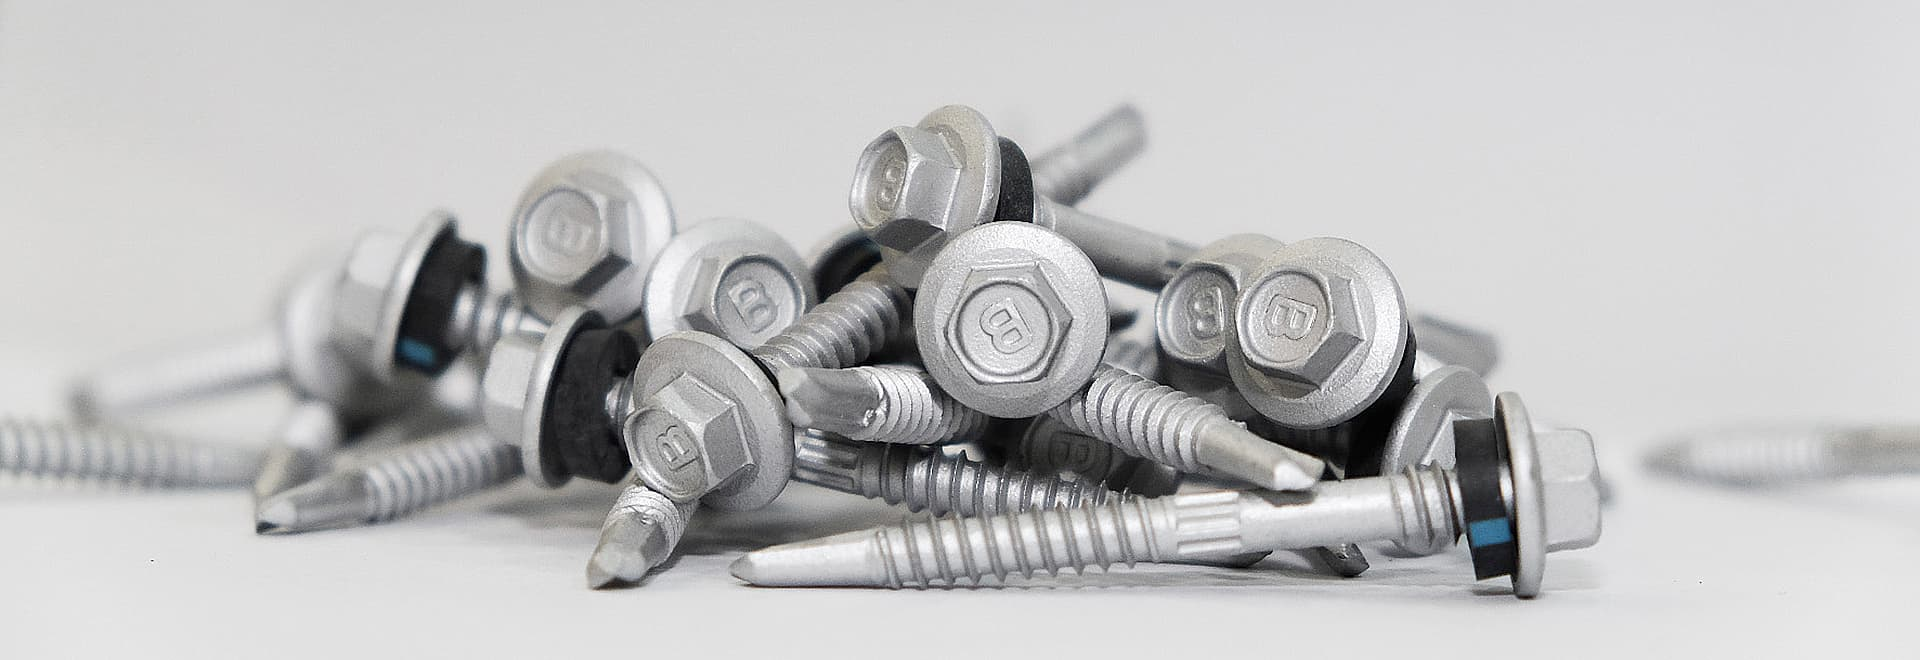 SLG Fasteners Asia's best Roofing Fastener company